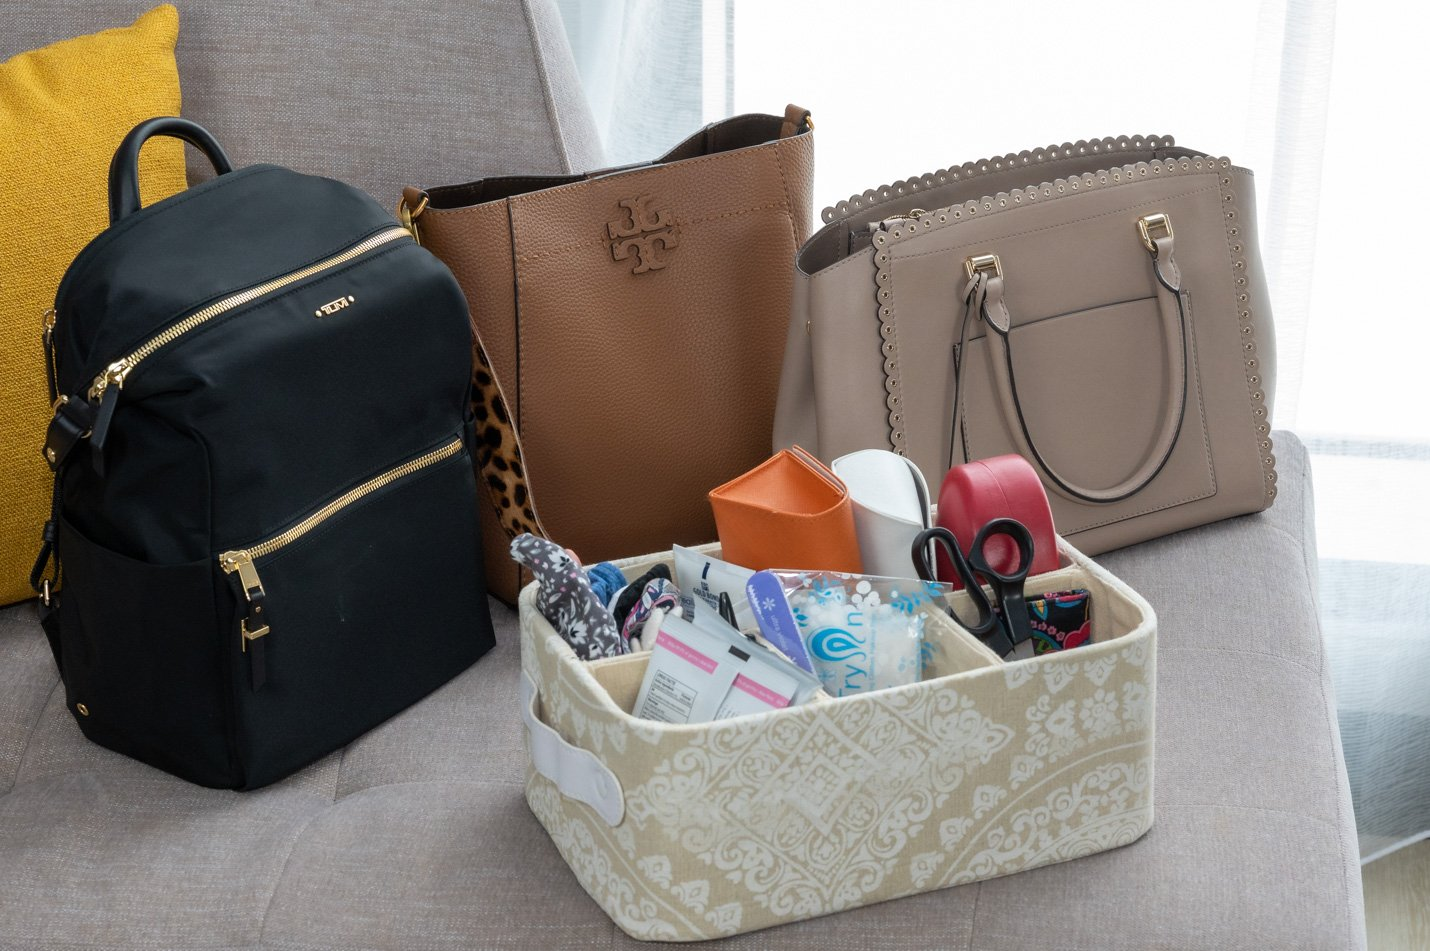 Organizer and Purses